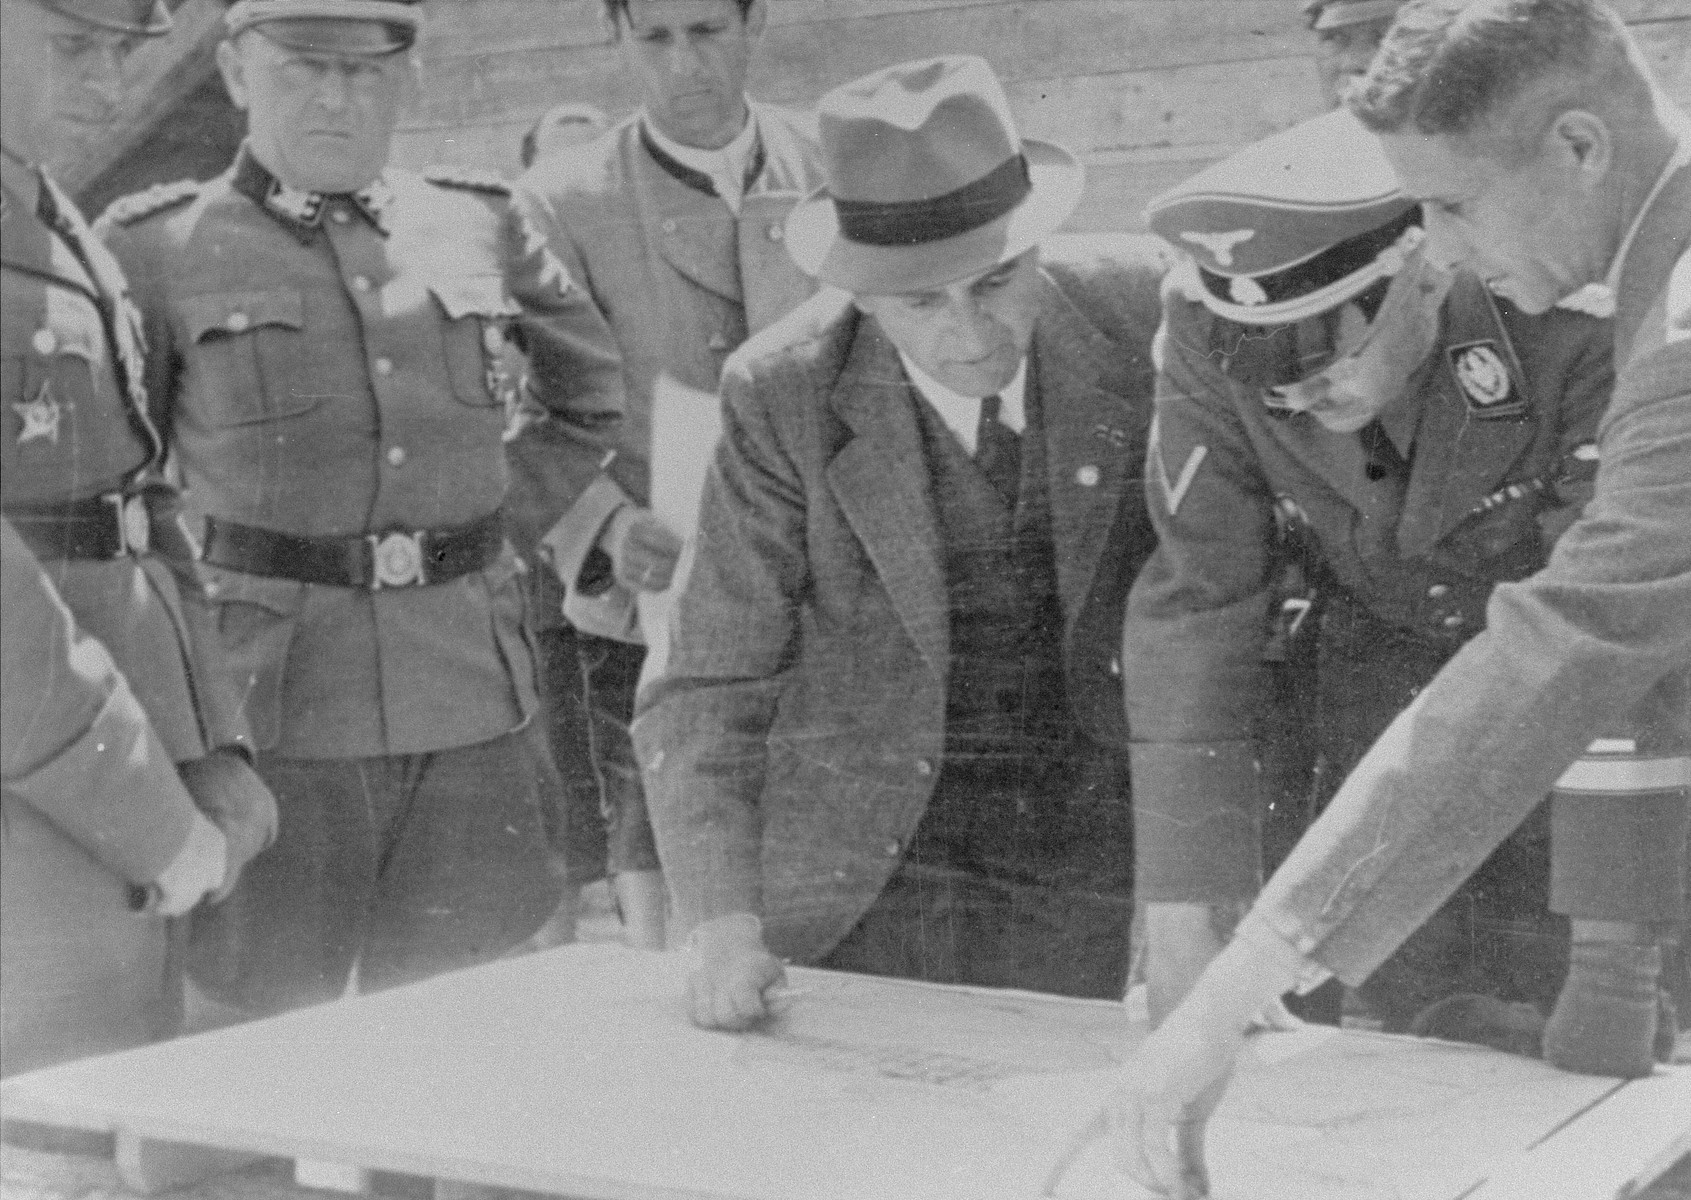 Reichsfuehrer SS Heinrich Himmler examines a building plan with Max Faust (wearing the fedora) during an inspection tour of the Monowitz-Buna building site.  Faust, who was an IG Farben engineer, was the head of building operations at Monowitz-Buna.  Also pictured is SS Obergruppenfuehrer Ernst Schmauser (second from the left) and Josef Kiermaier (behind Himmler, partially hidden from view)